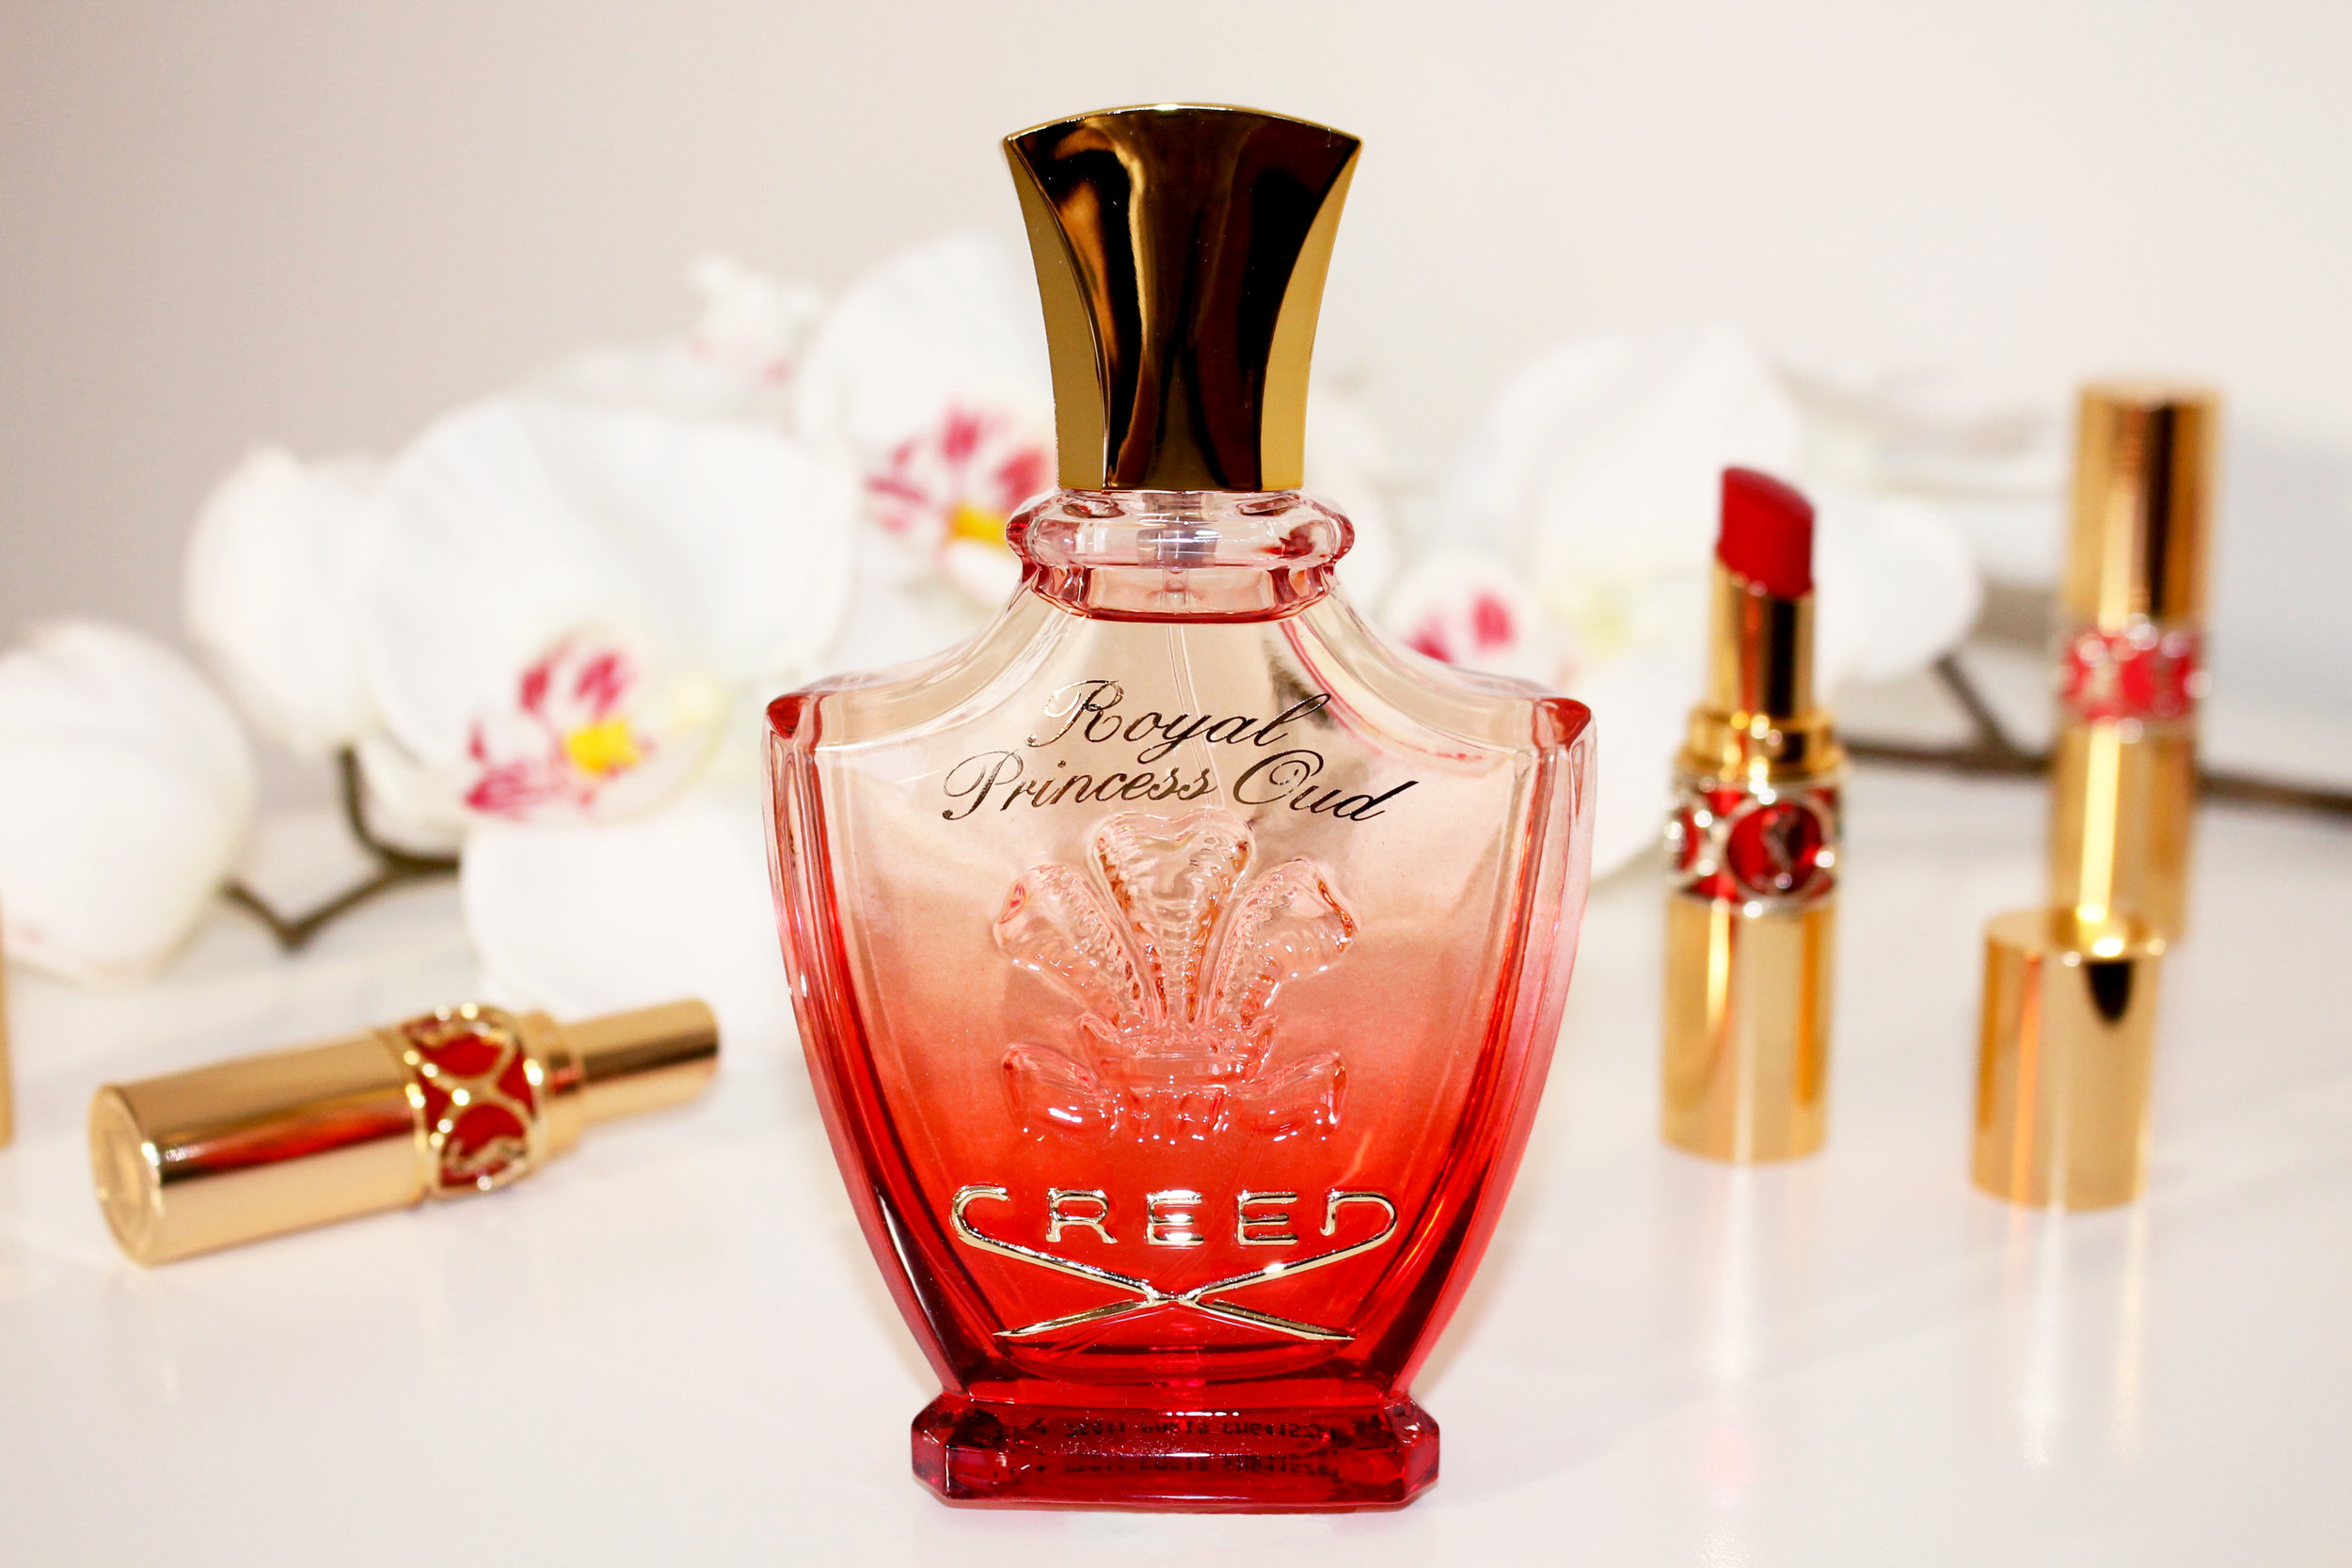 Candy Coated Closets Royal Princess Oud 3